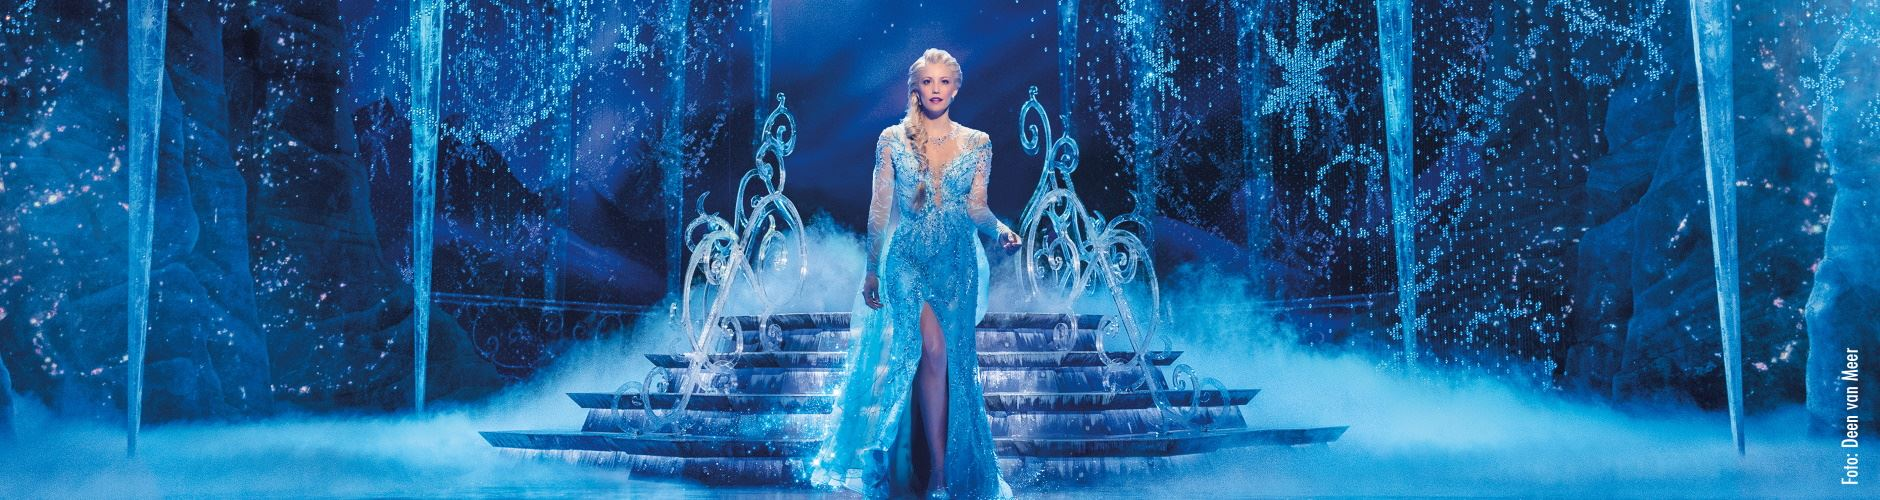 caroline-bowman-as-elsa-in-frozen-north-american-tour-photo-by-deen-van-meer